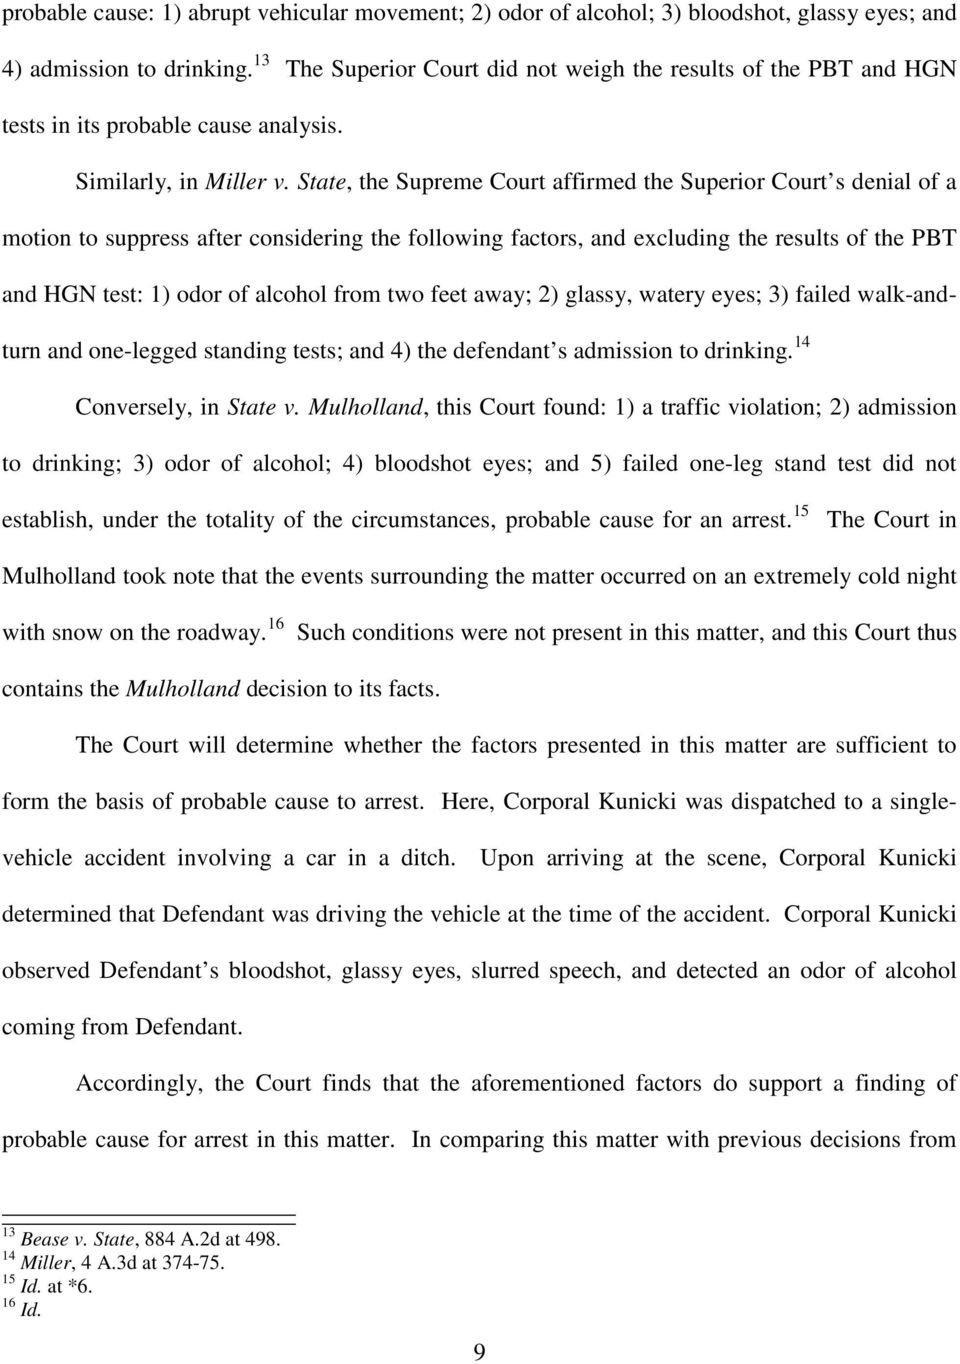 State, the Supreme Court affirmed the Superior Court s denial of a motion to suppress after considering the following factors, and excluding the results of the PBT and HGN test: 1) odor of alcohol